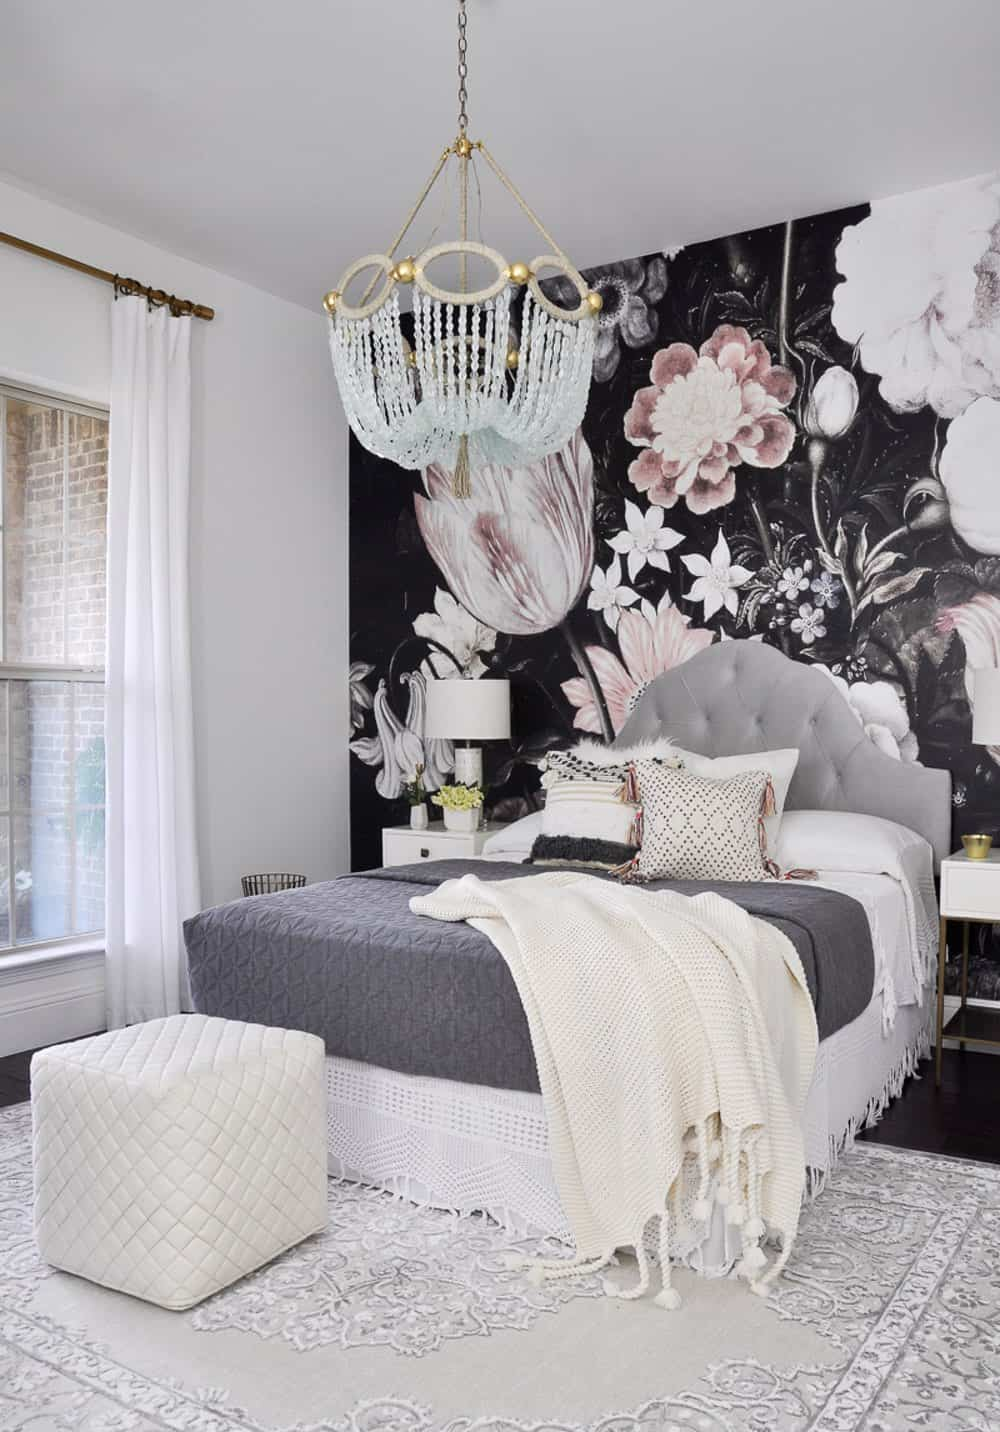 Bedroom with flowered wallpaper accent wall